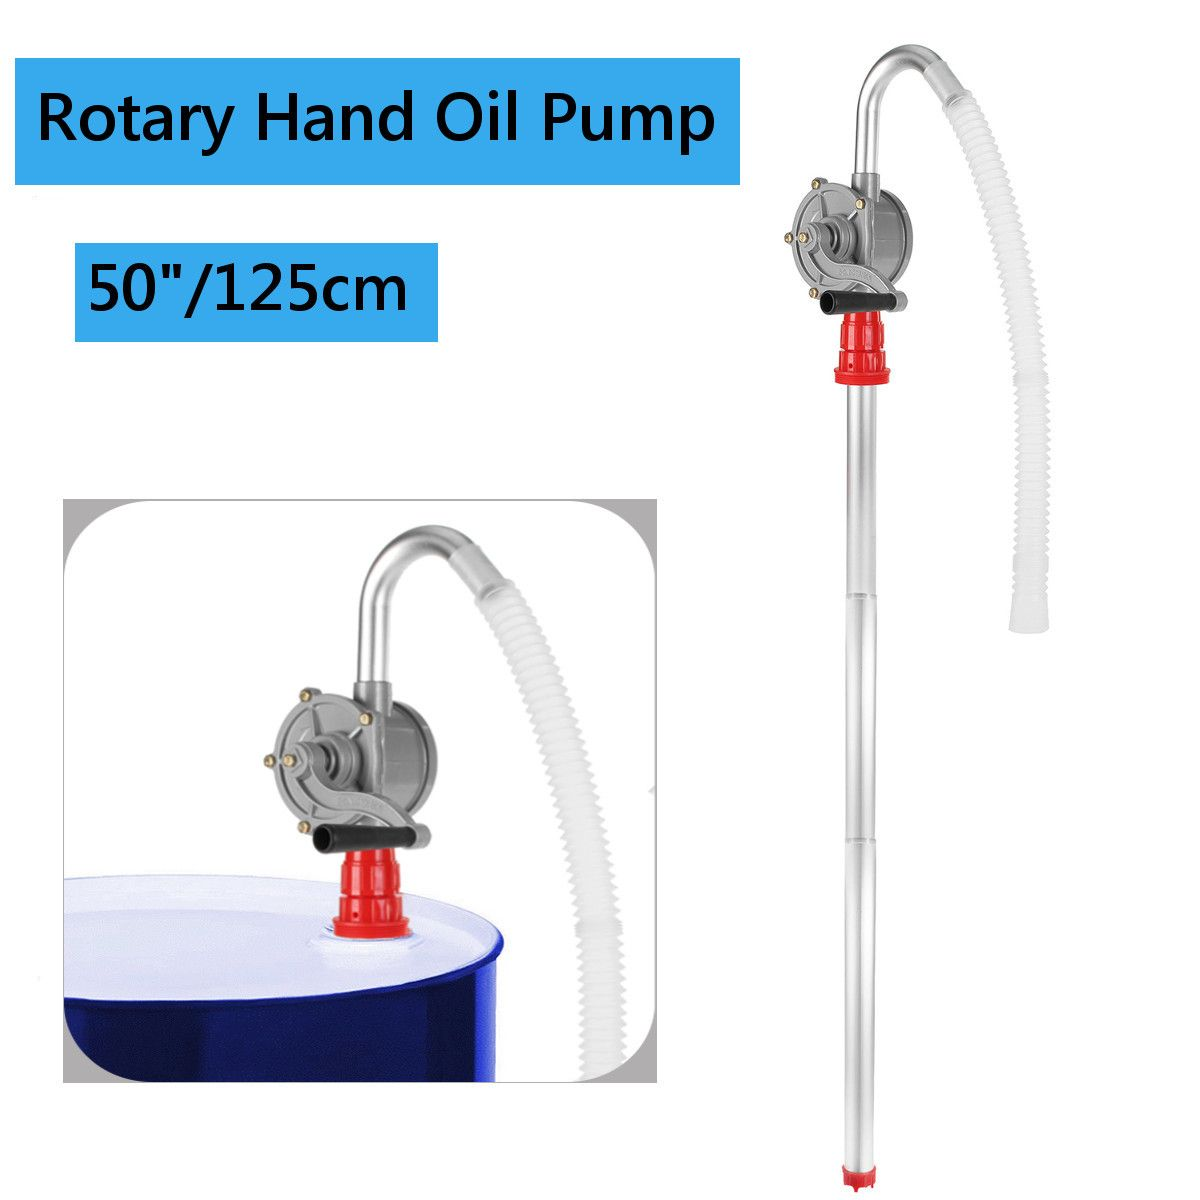 22L/M 125cm Self Priming Rotary Oil for Diesel Fuel Hand Pump Barrel Suction Transfer Tool